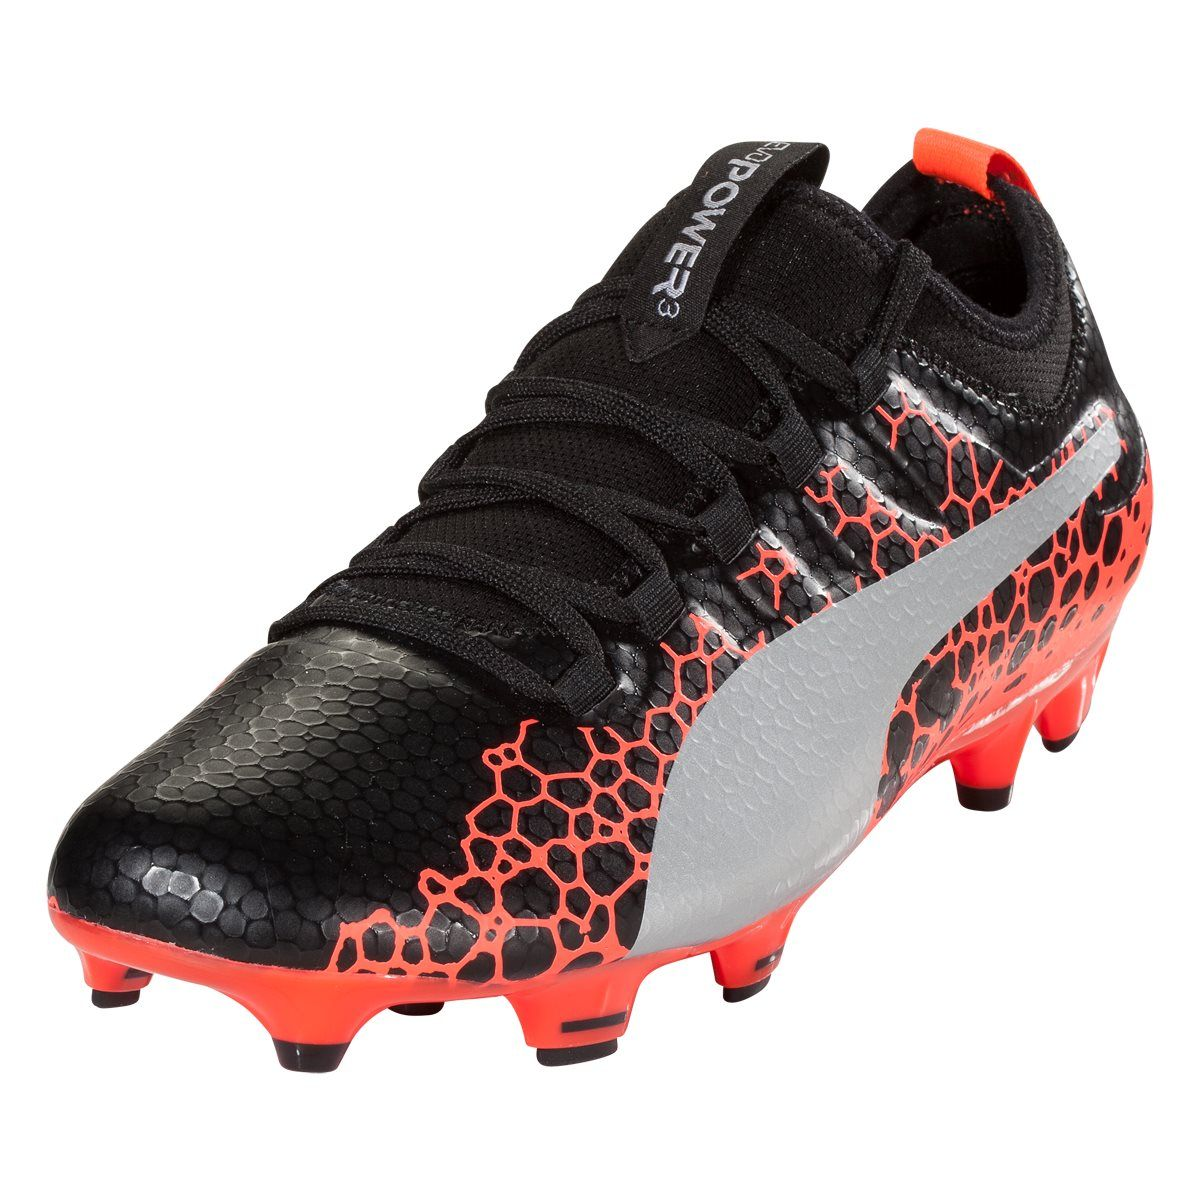 Puma Evopower Vigor 3 Graphic Fg Soccer Cleat Soccer Cleats Cleats Sport Shoes